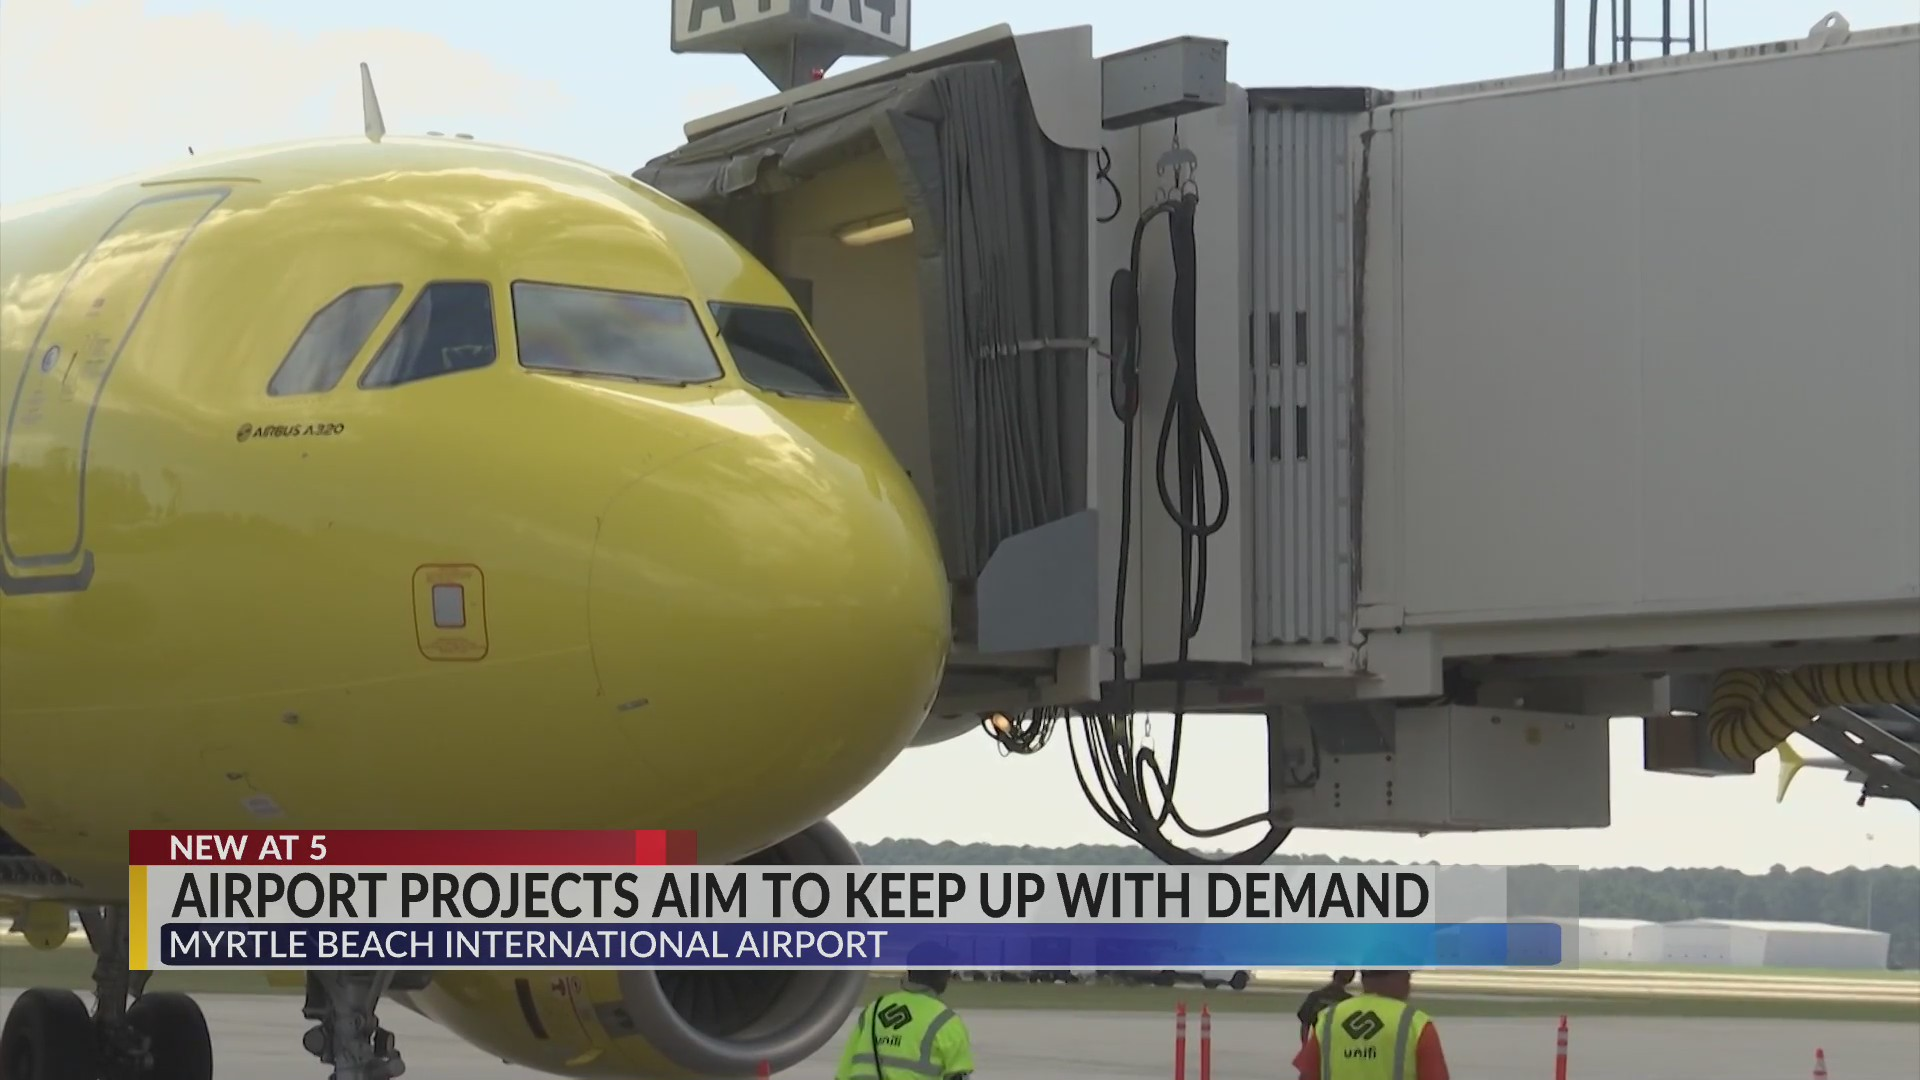 Myrtle Beach International Airport leaders plan projects for the offseason to keep up with growing demand